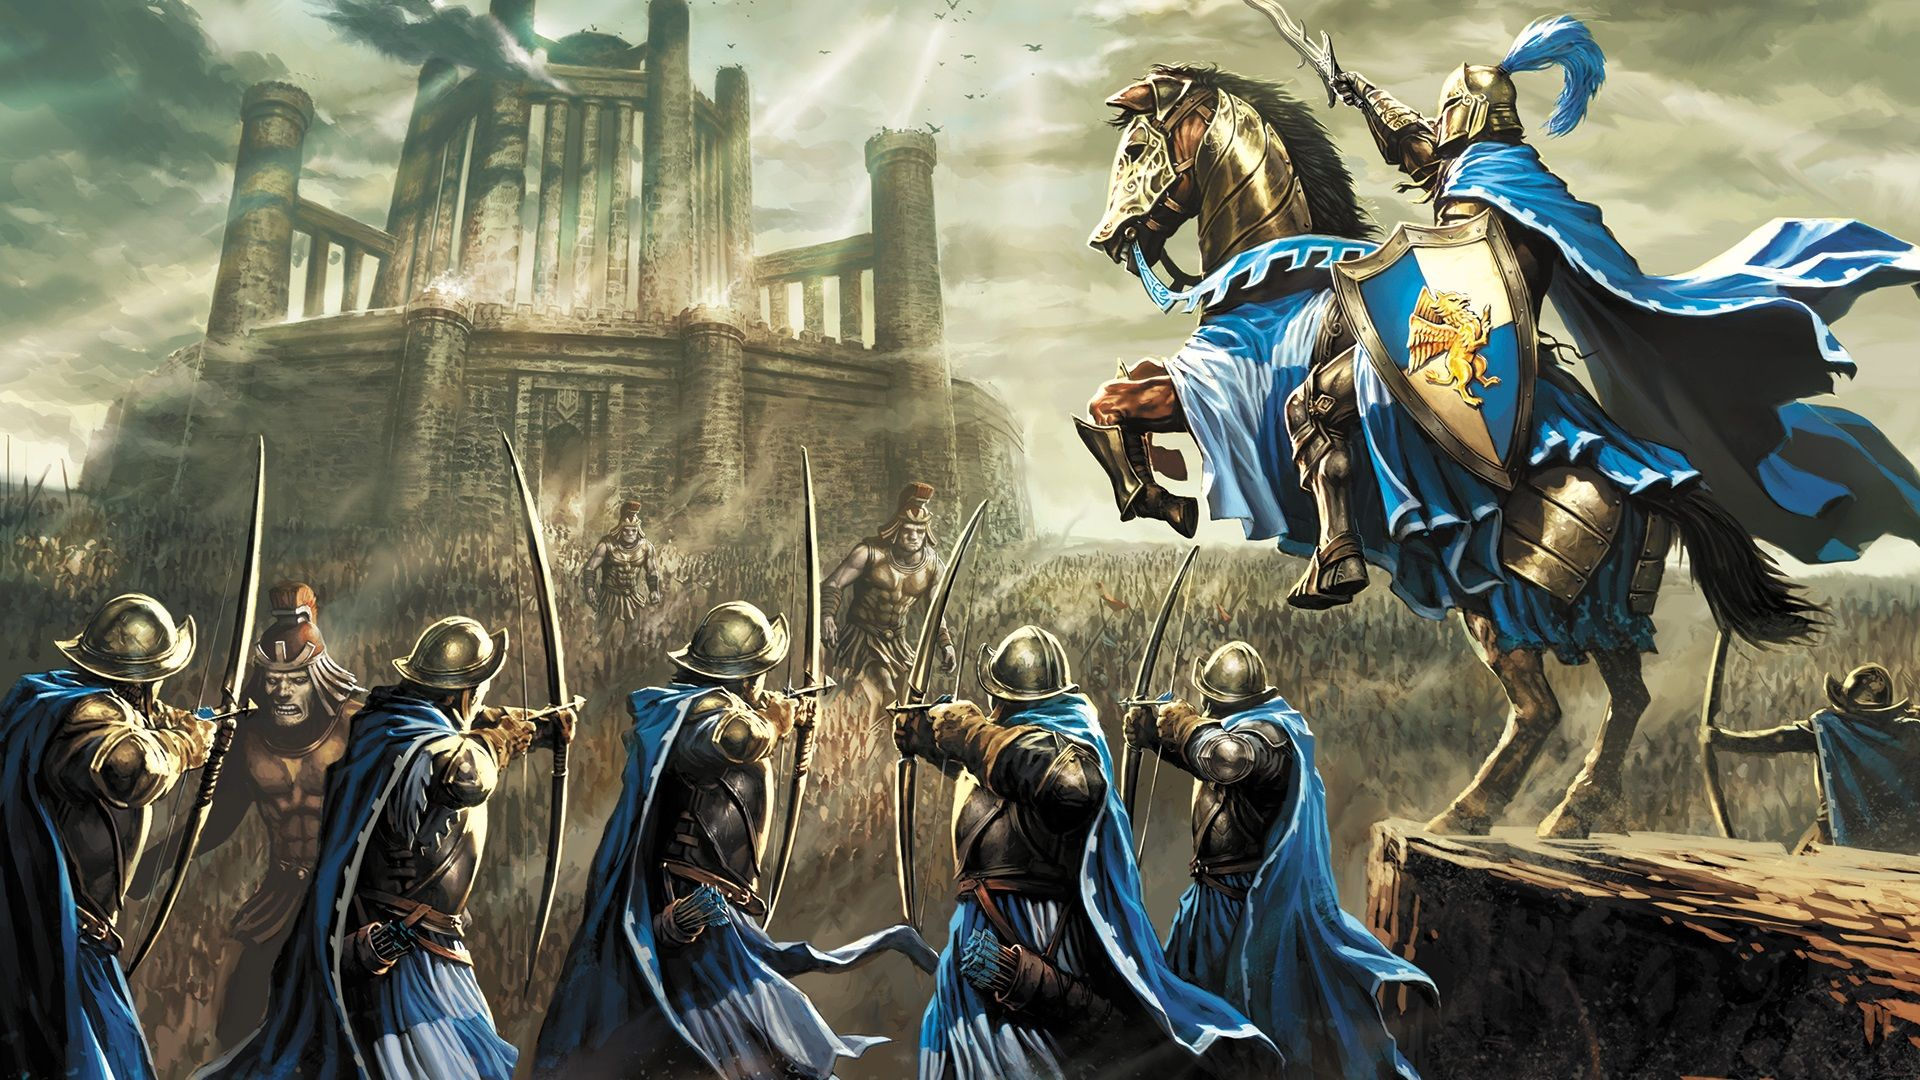 Download Free Heroes Of Might And Magic 3 Hd Mod Apk Horse Illustration Horse Wallpaper Hero